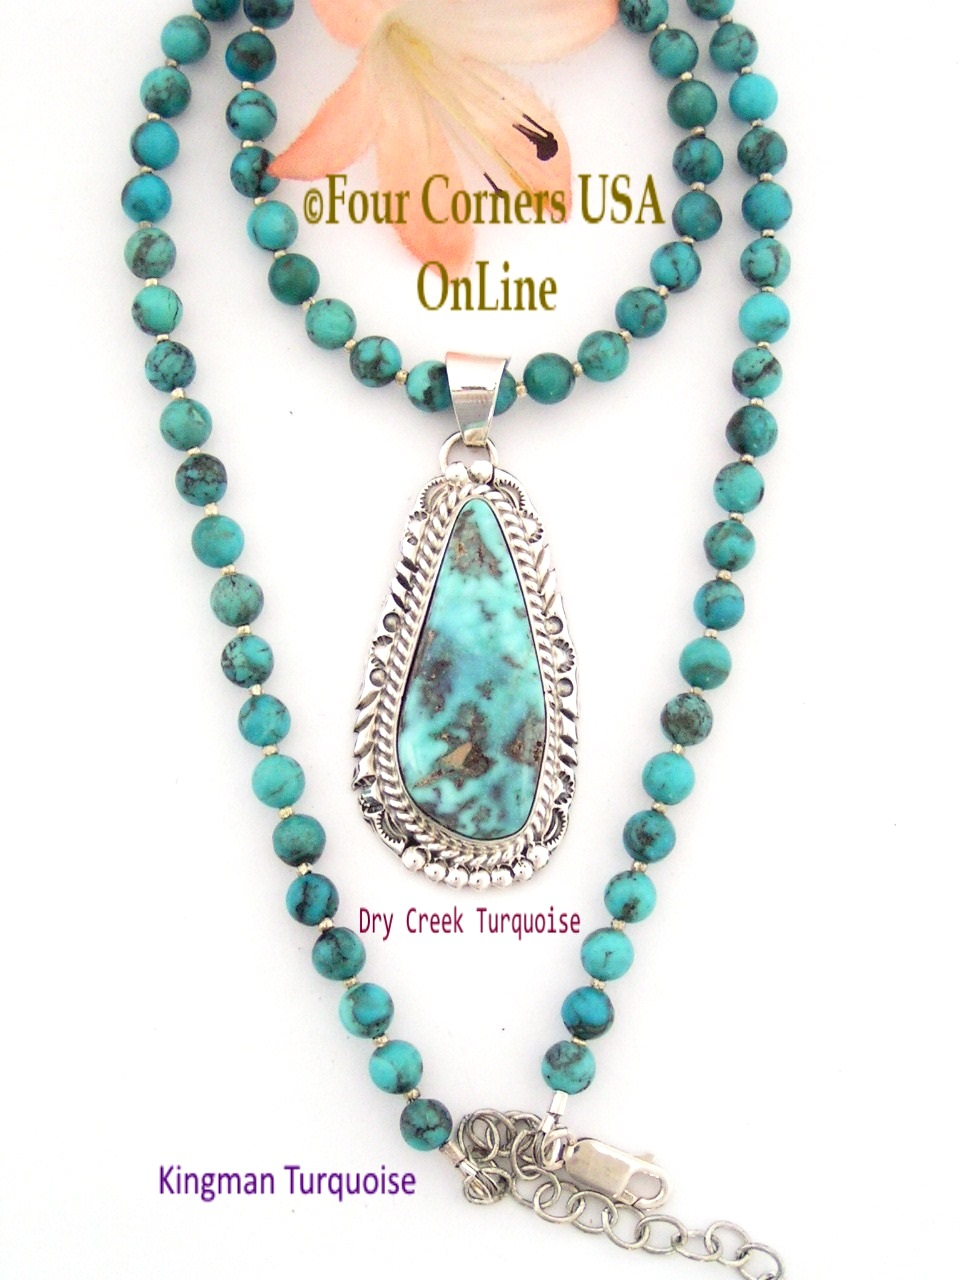 Dry Creek Old Kingman Blue Turquoise Bead Necklace Four Corners USA OnLine